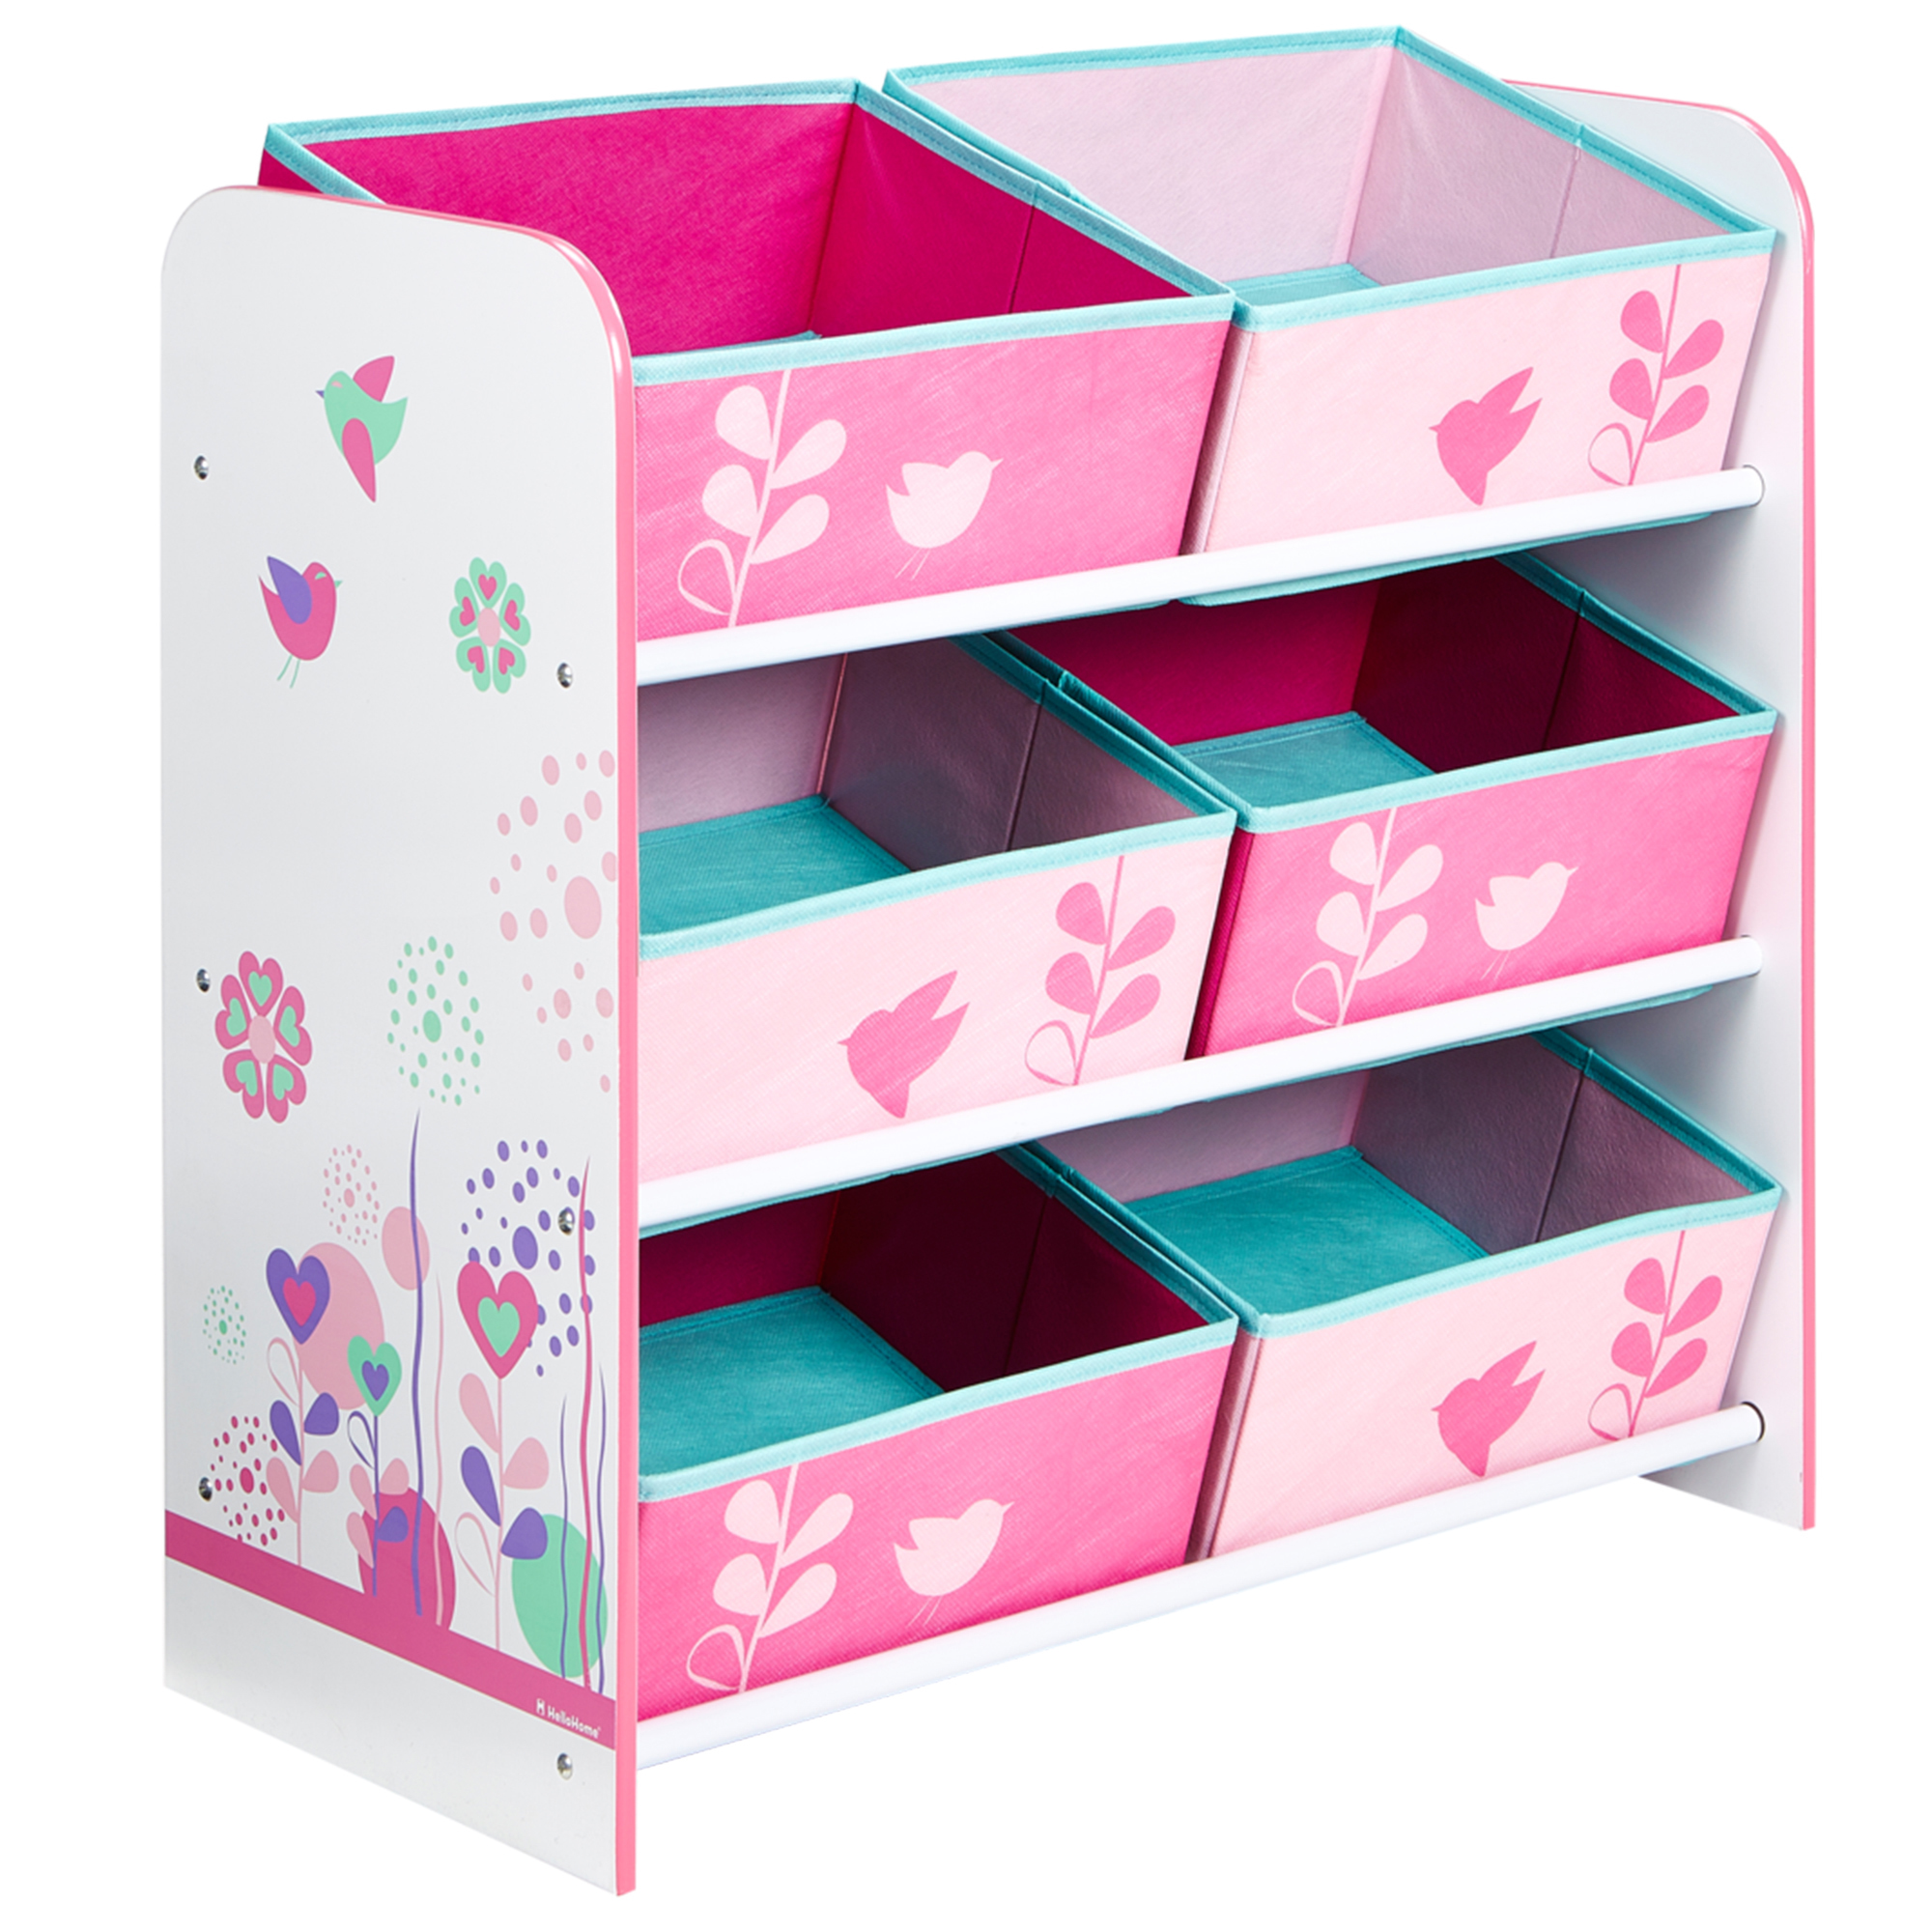 SKU #WORD1064 Flowers u0026 Birds 6 Bin Storage Unit is also sometimes listed under the following manufacturer numbers WA471FLWS01  sc 1 st  Temple u0026 Webster & Flowers u0026 Birds 6 Bin Storage Unit | Temple u0026 Webster